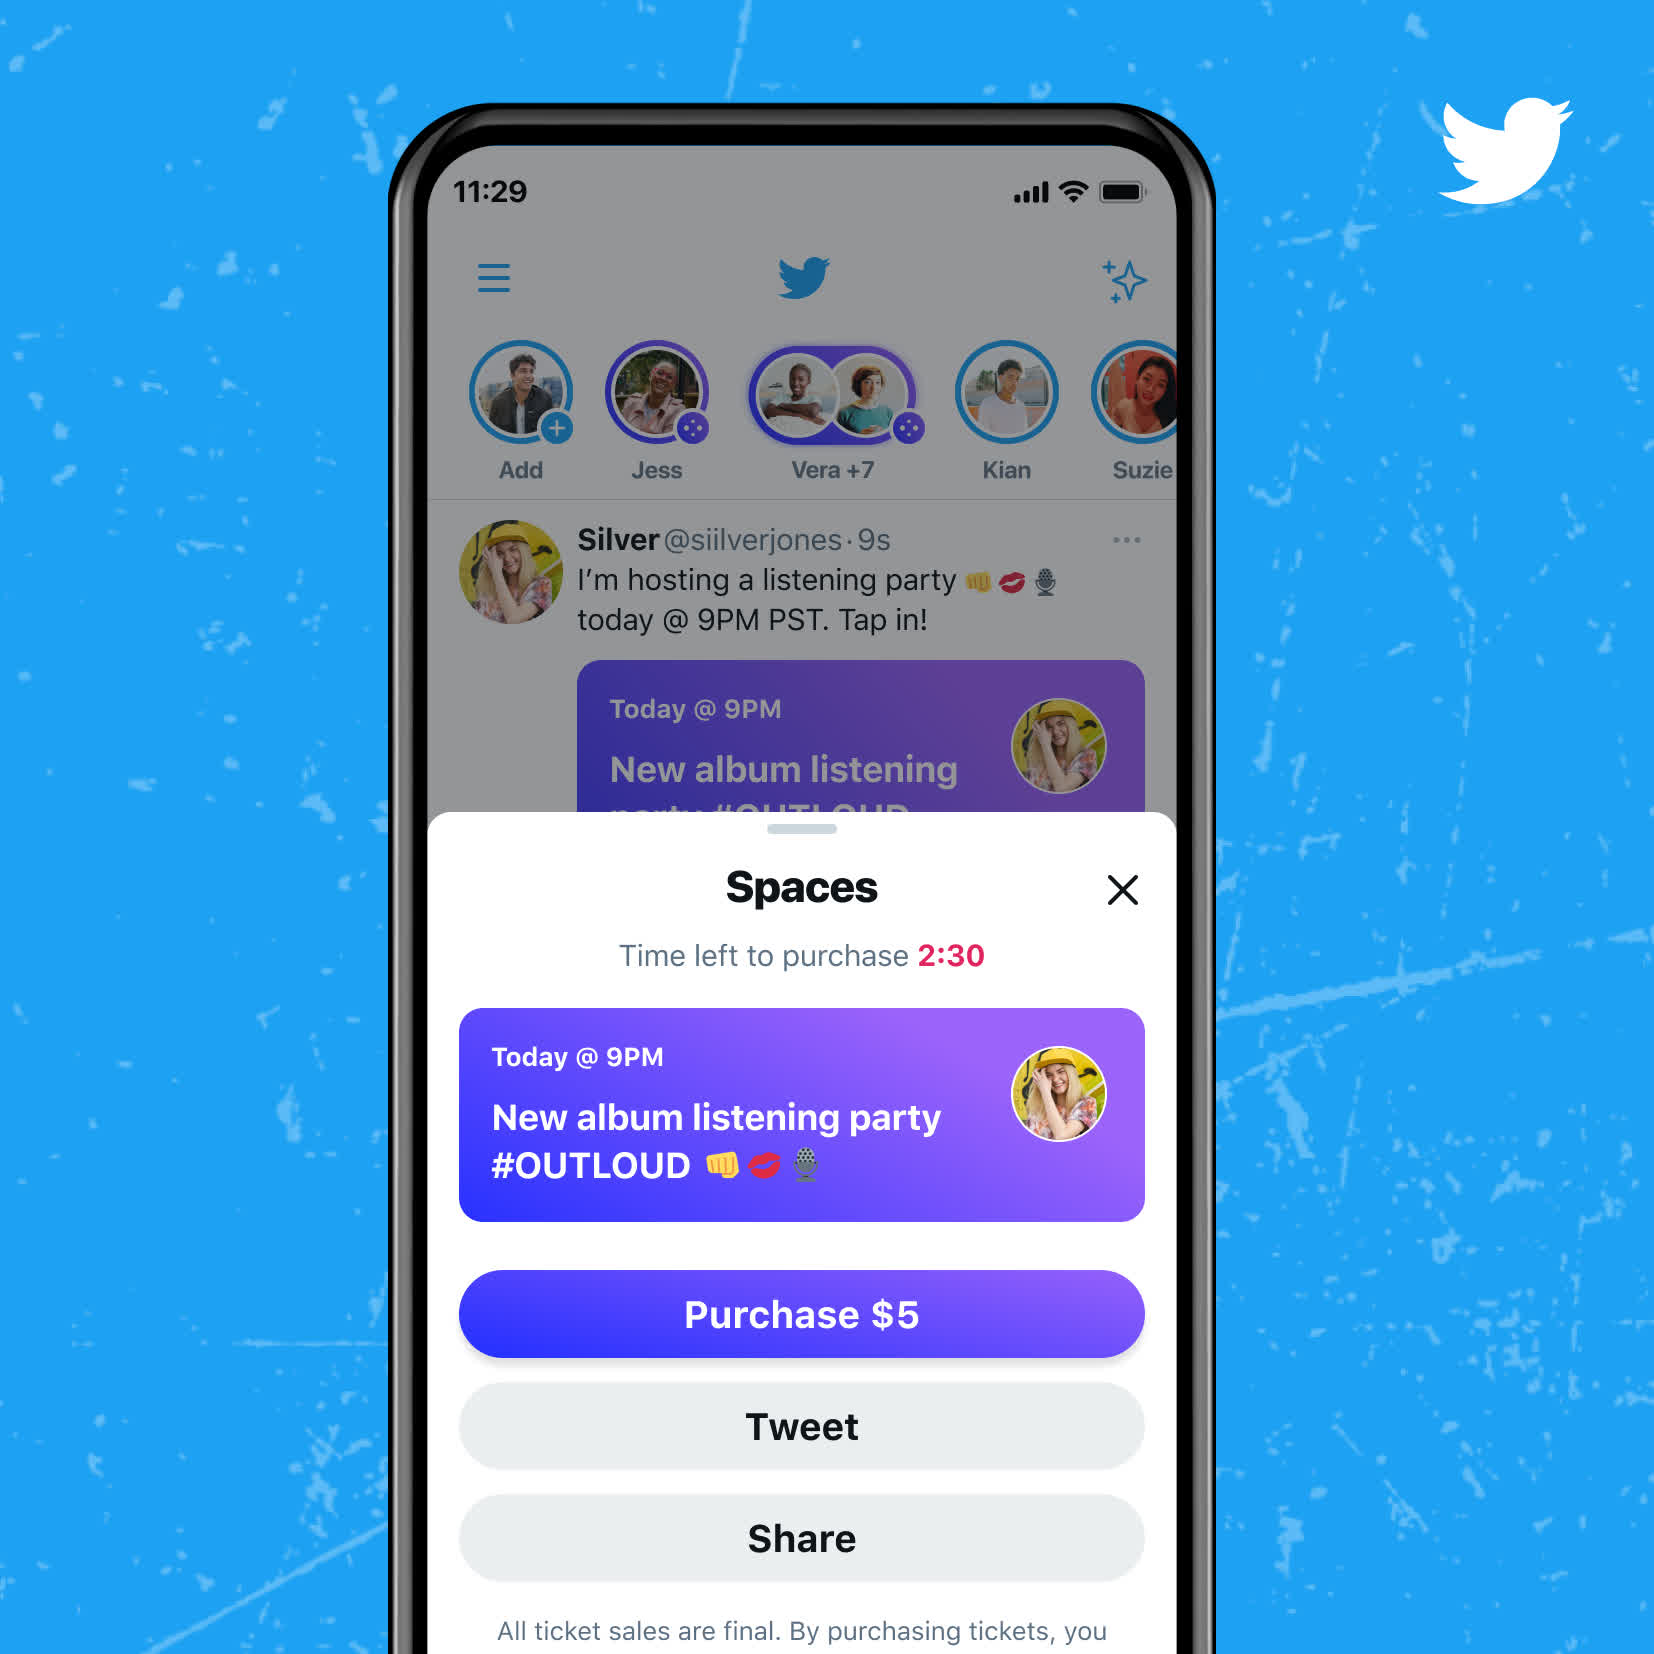 Twitter opens up Spaces to anyone with 600+ followers